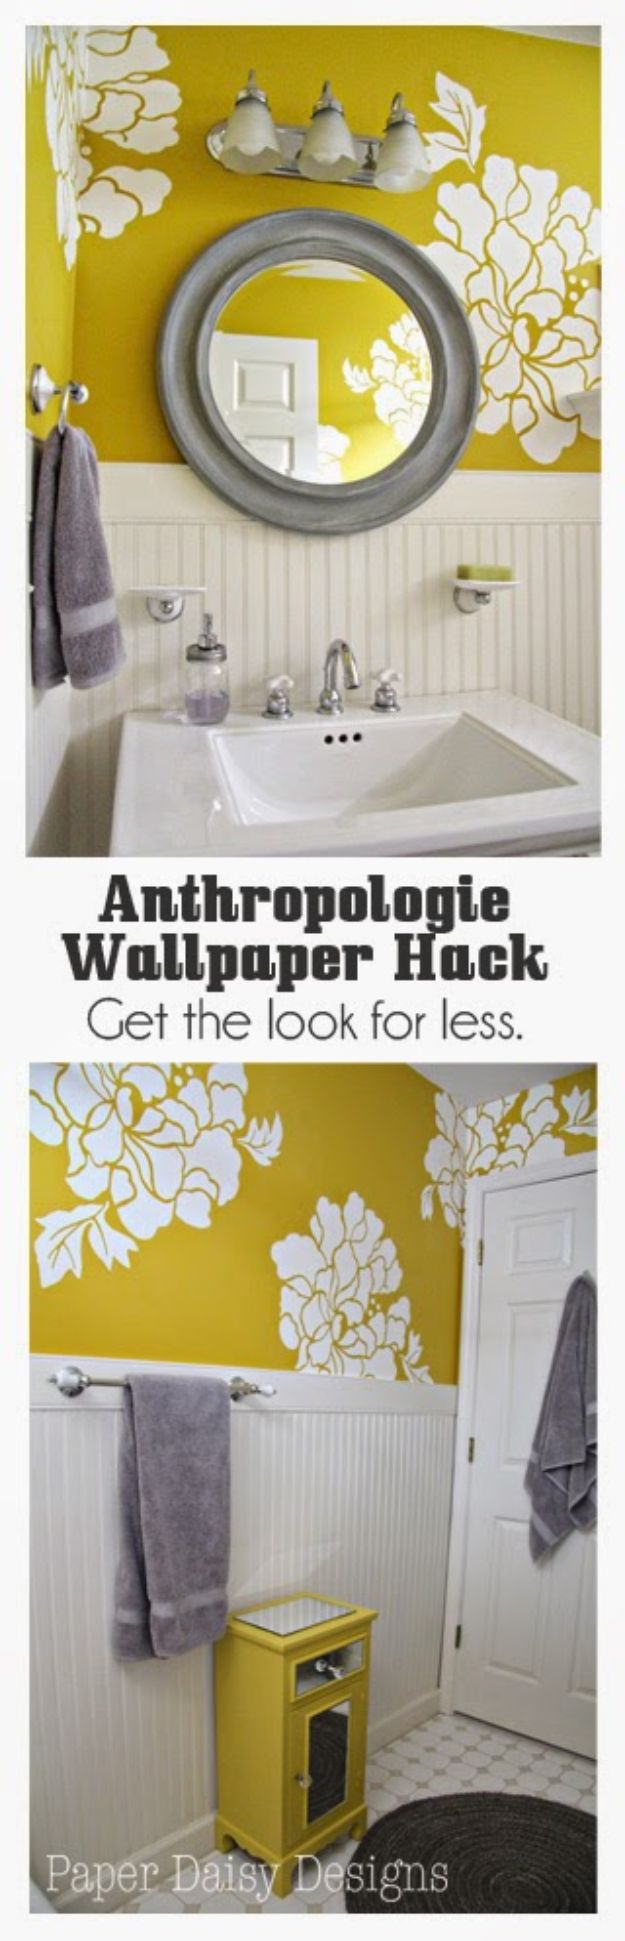 Apartment Anthropologie Armoire - Anthropologie-Wallpaper-Hack_Fantastic Apartment Anthropologie Armoire - Anthropologie-Wallpaper-Hack  Picture_652319.jpg